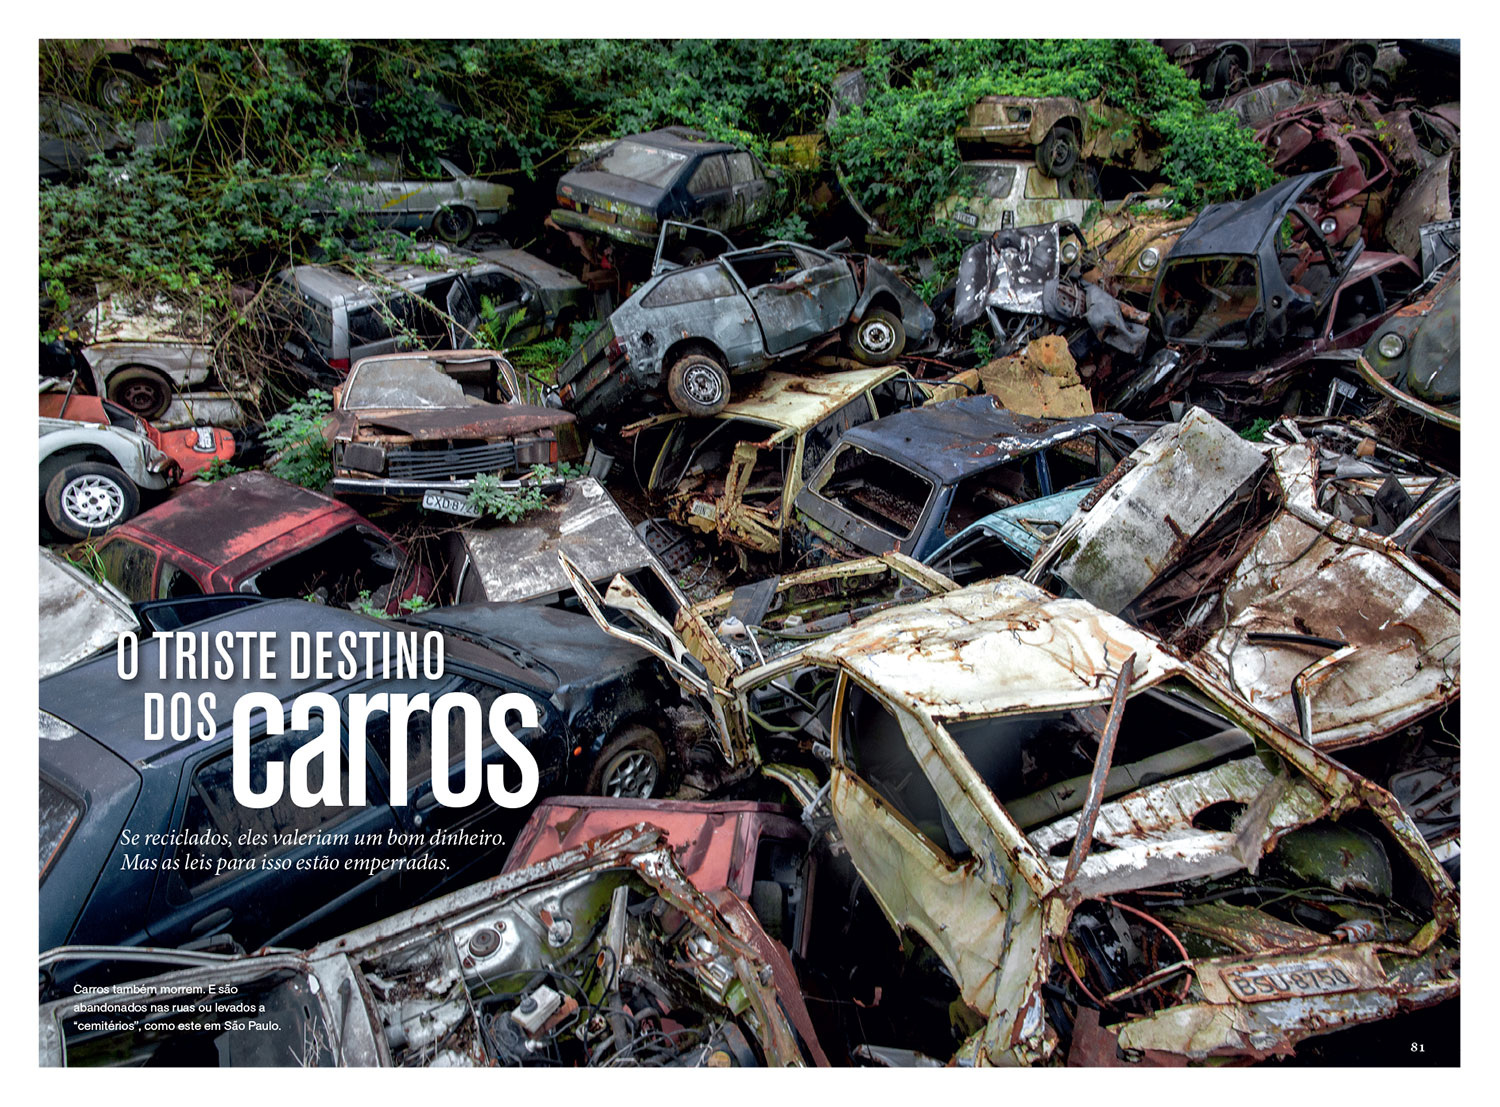 Photo Editing and Design for Feature  O Triste Destino dos Carros | National Geographic Brazil, December 2013. Photos by Victor Moriyama